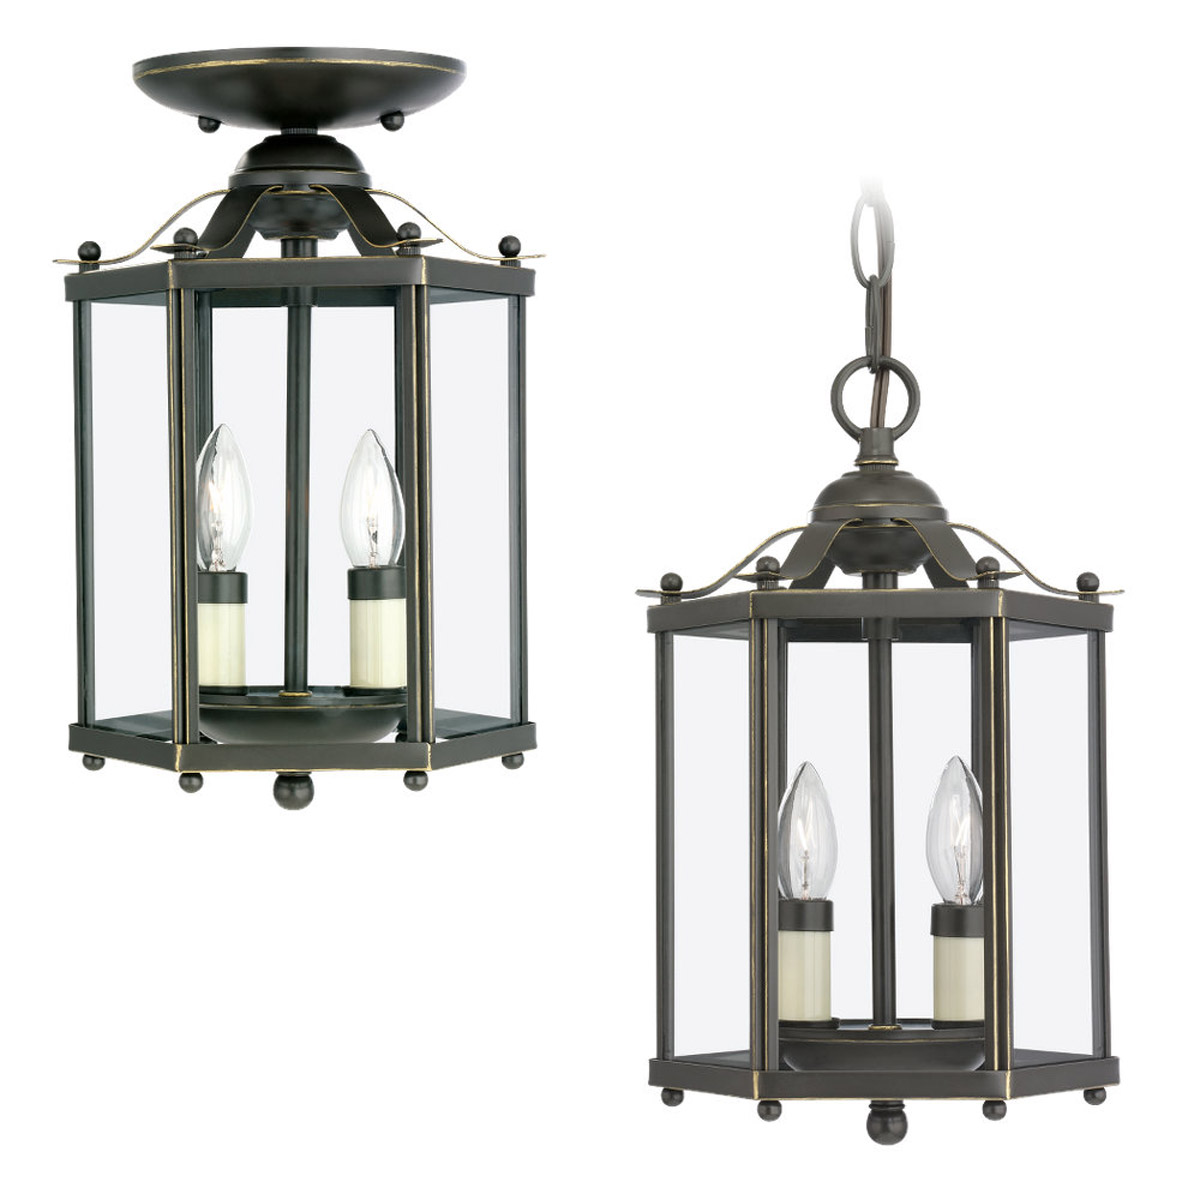 Sea Gull Lighting Bretton 2 Light Pendant Convertible in Heirloom Bronze 5232-782 photo